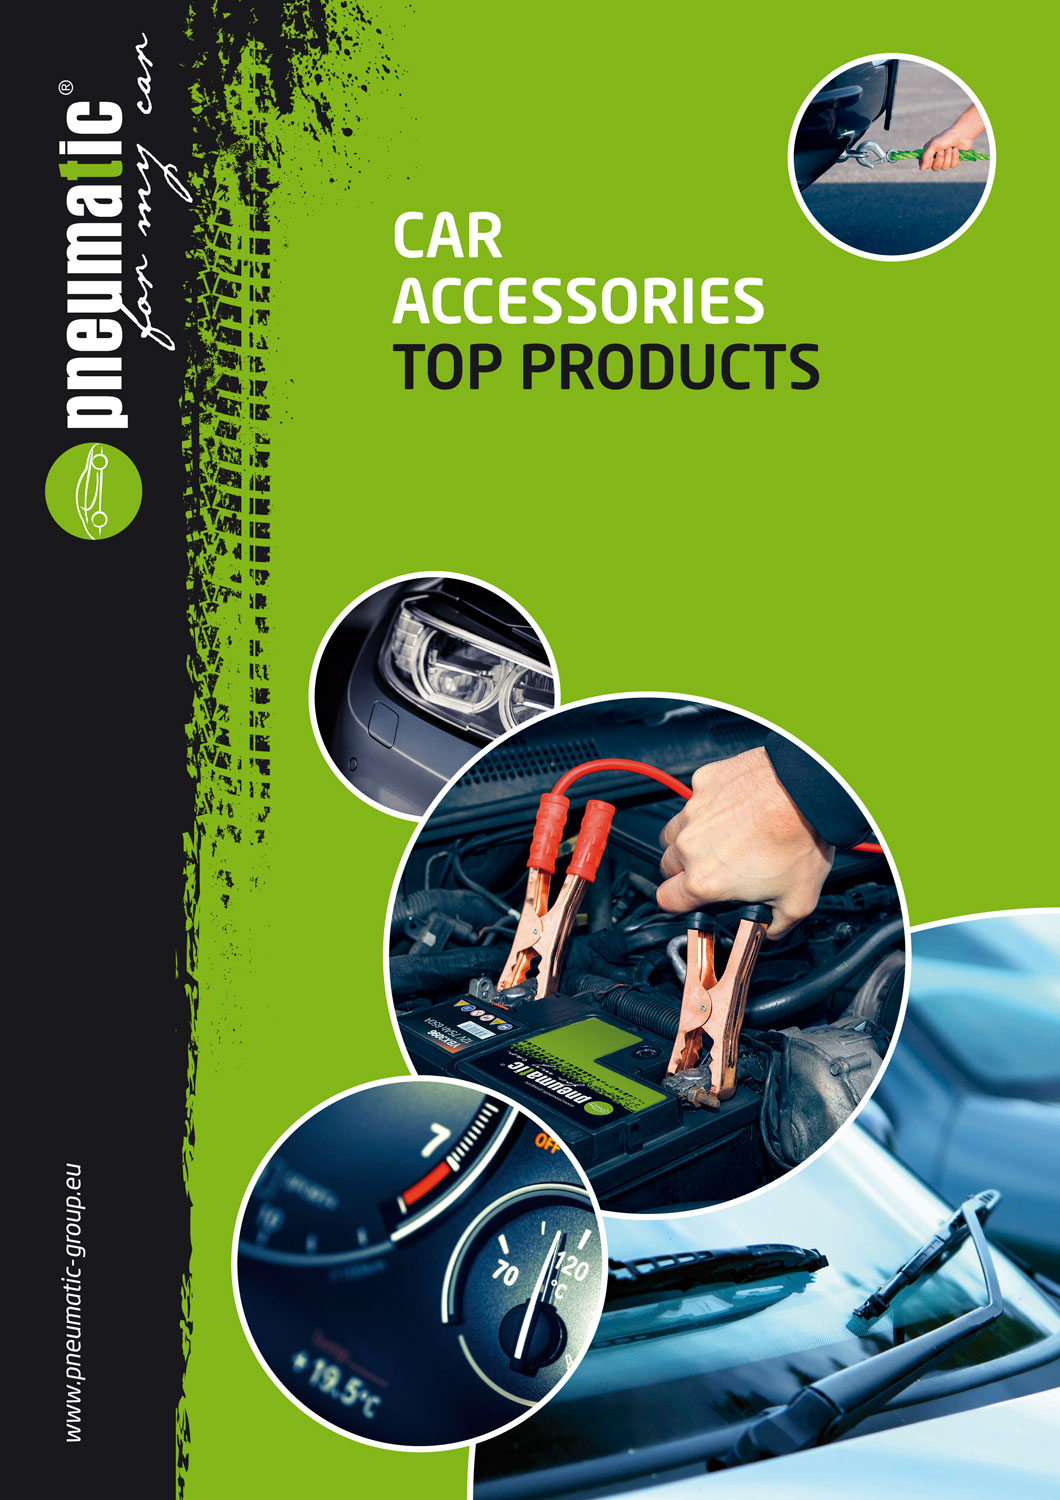 Pneumatic - Car Accessories Top Products